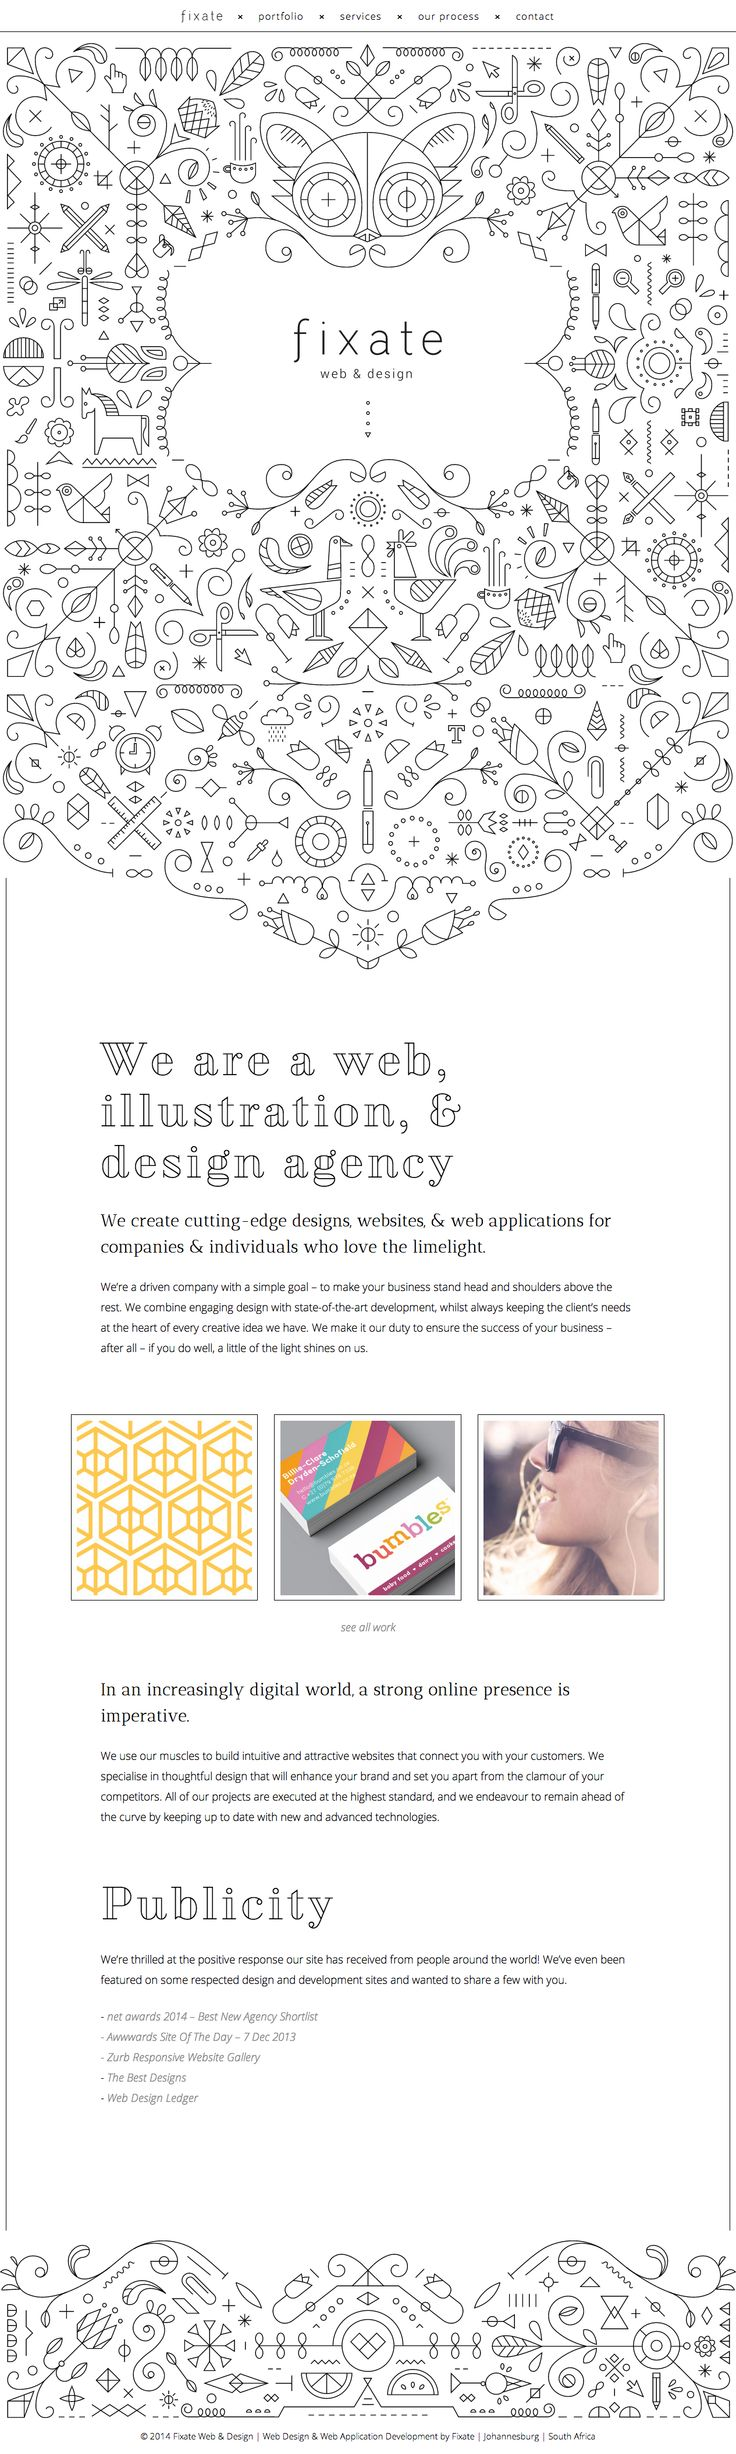 http://fixate.it/ Web Design Agency   Johannesburg   South Africa   Fixate